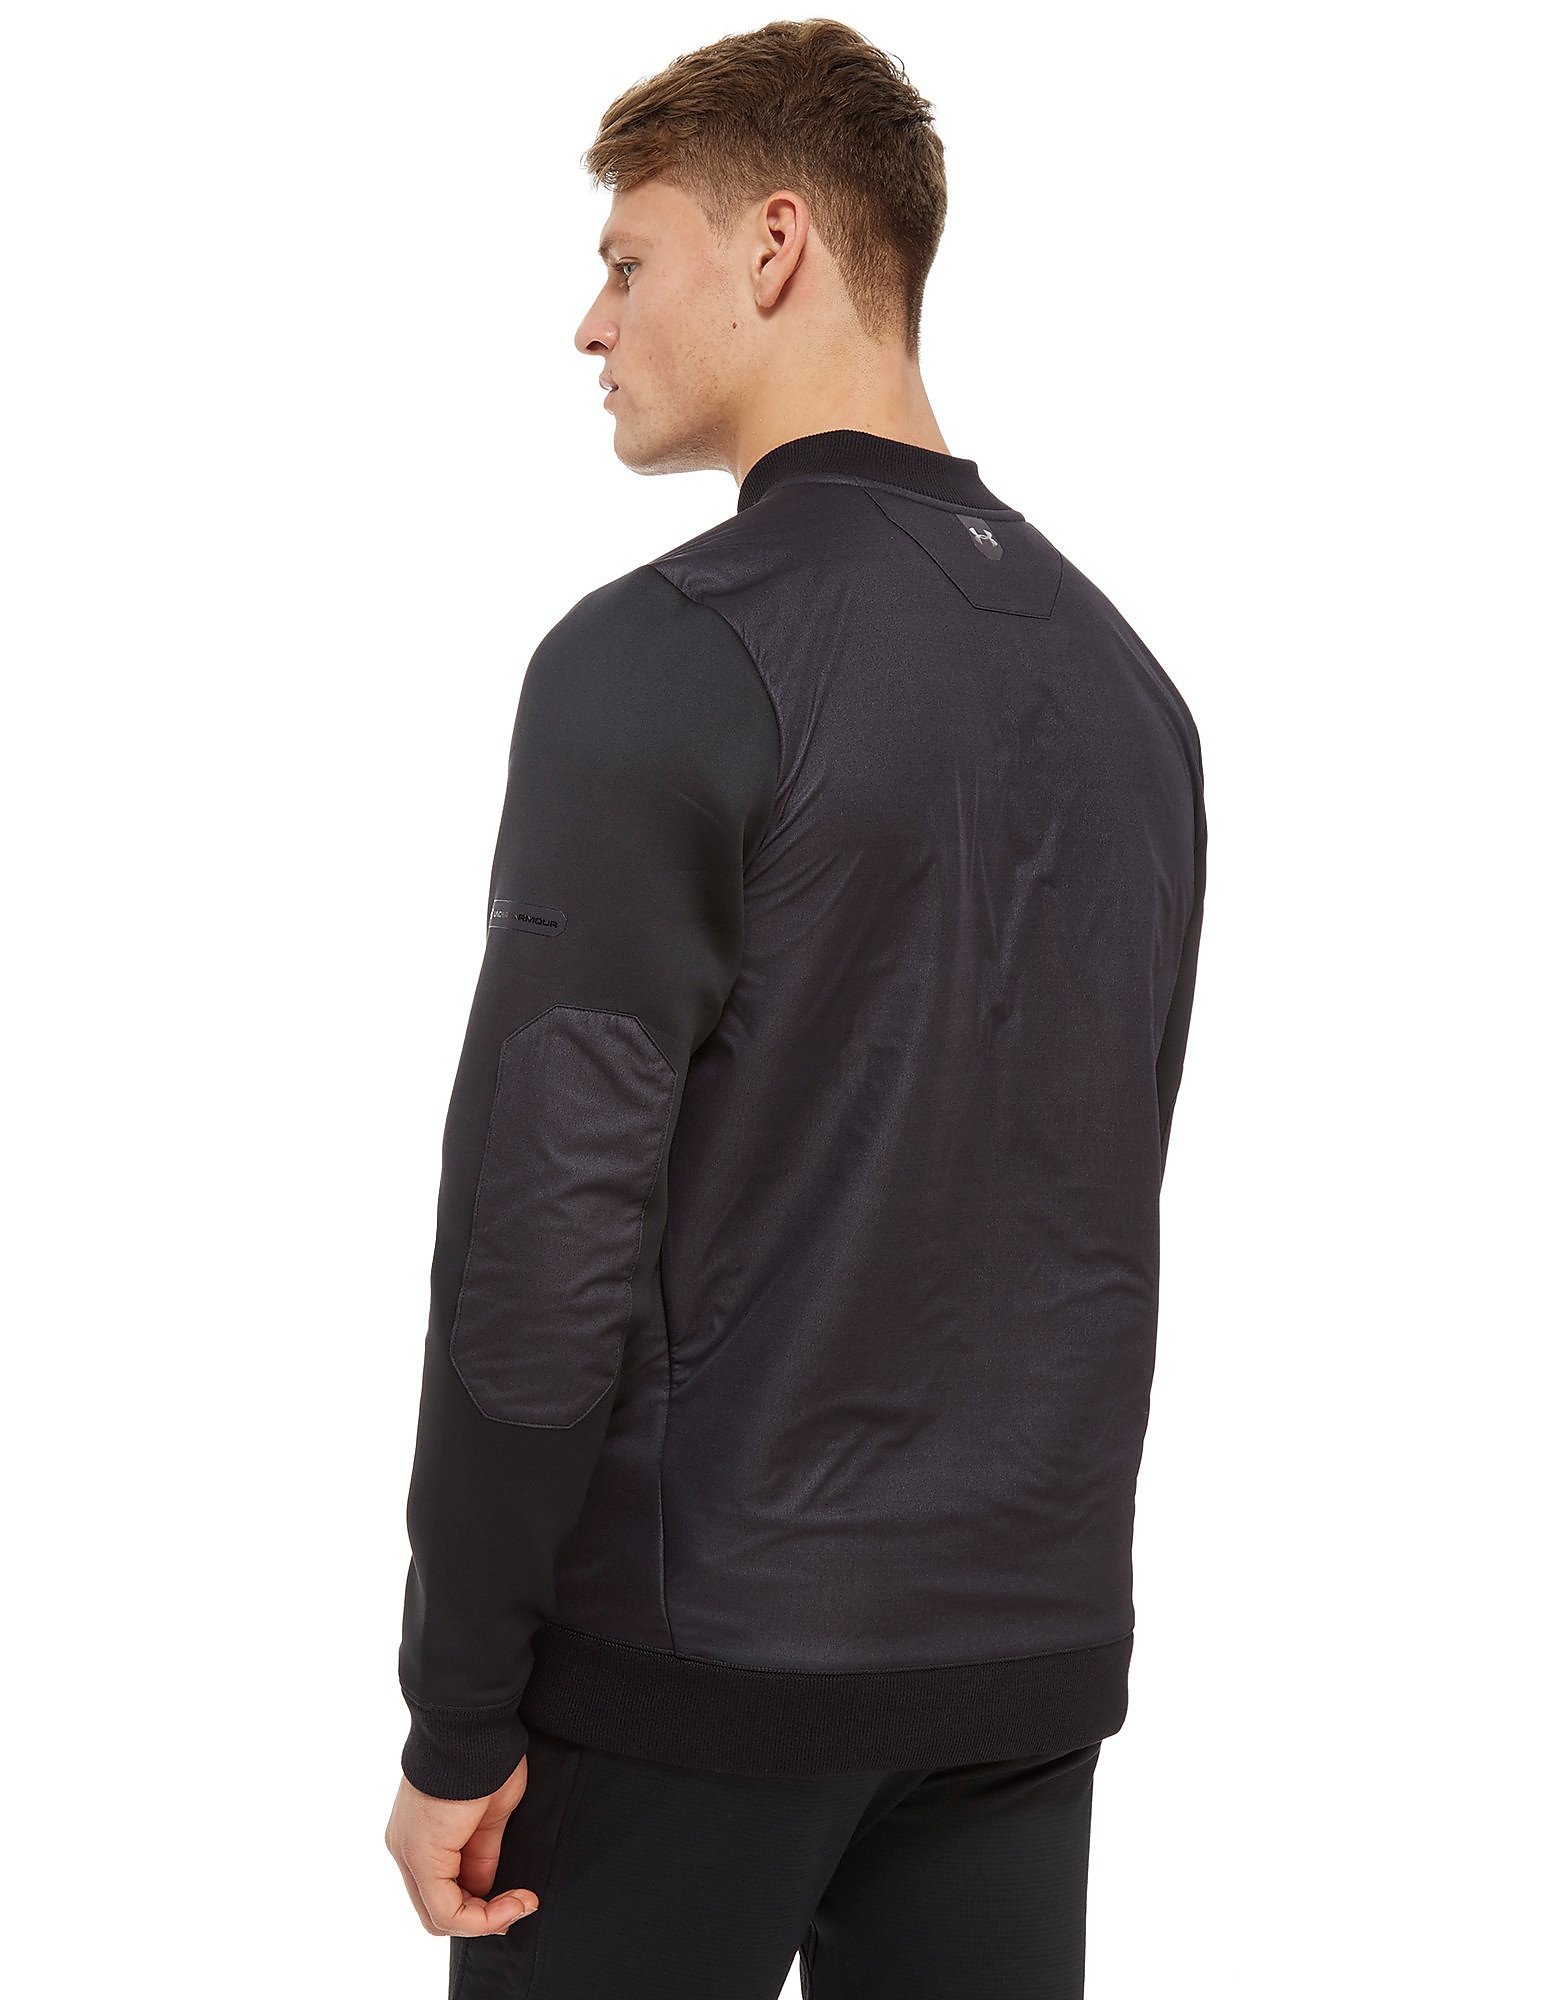 Under Armour Unstoppable GORE-TEX 1/2 Zip Top